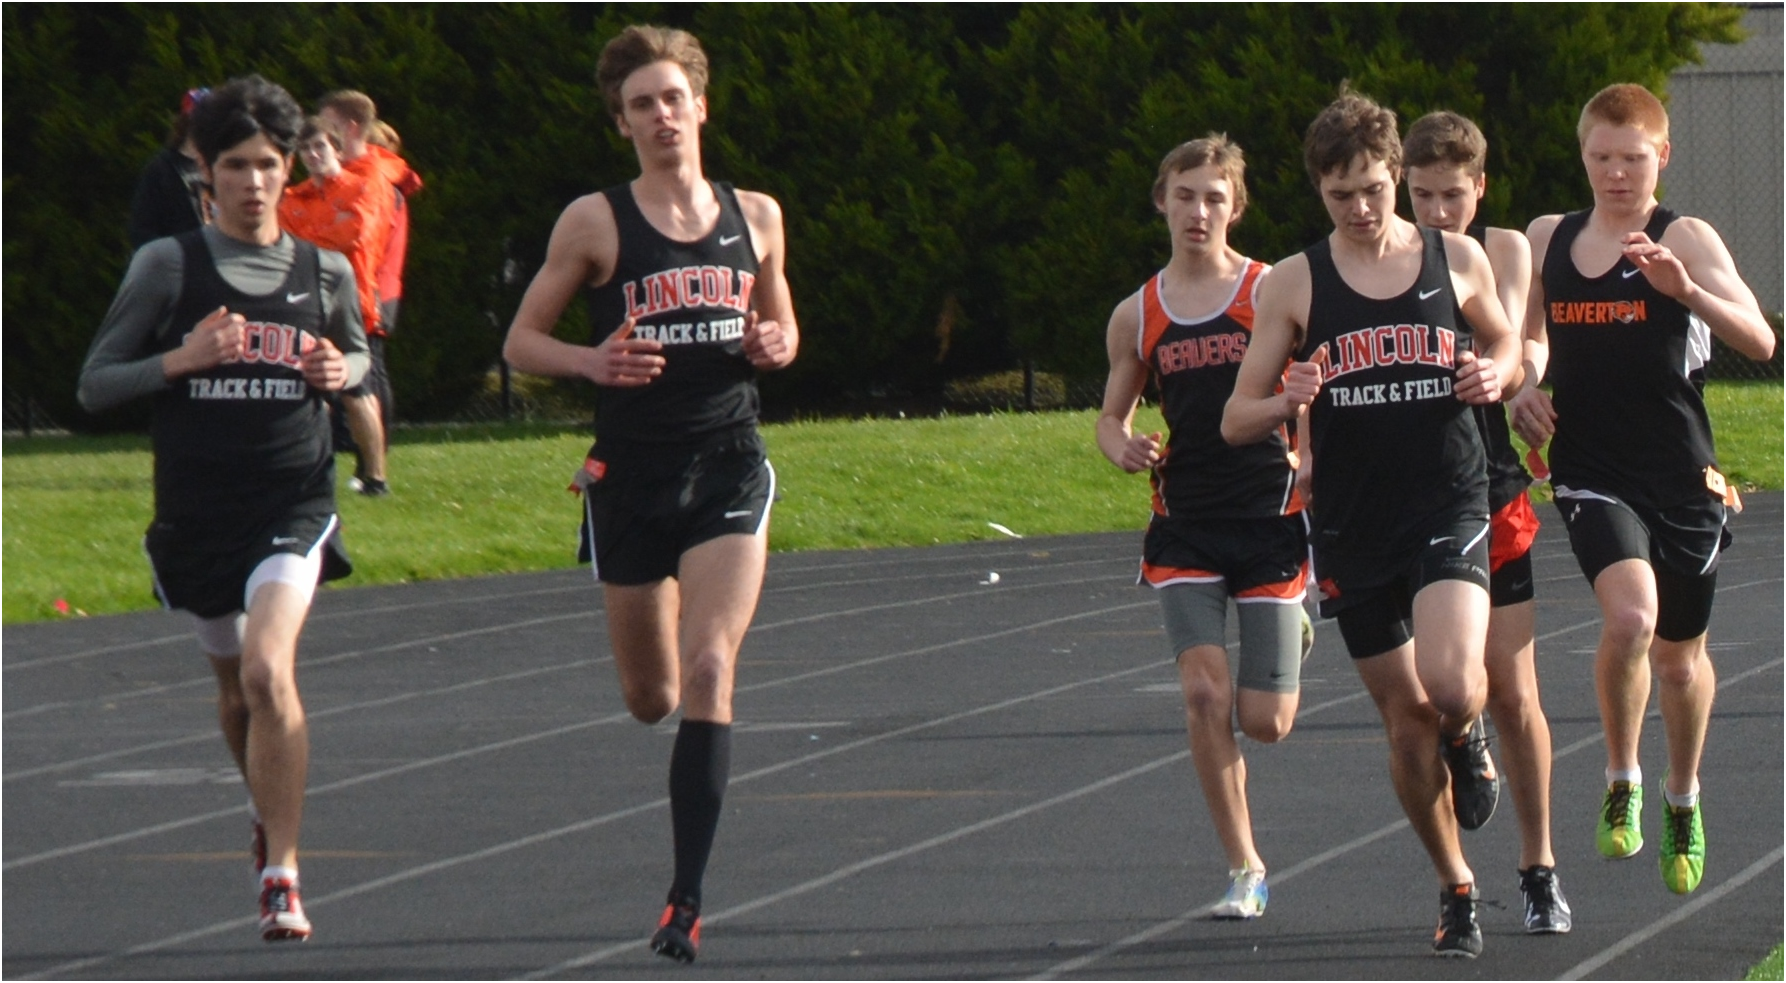 Jaxom Moore, Ransom Gravatt, and Teddy Kortenhoff take the lead in the 1500m run at Beaverton. Gravatt won the race in 4:15.68, and Graham was second in 4:18.68.